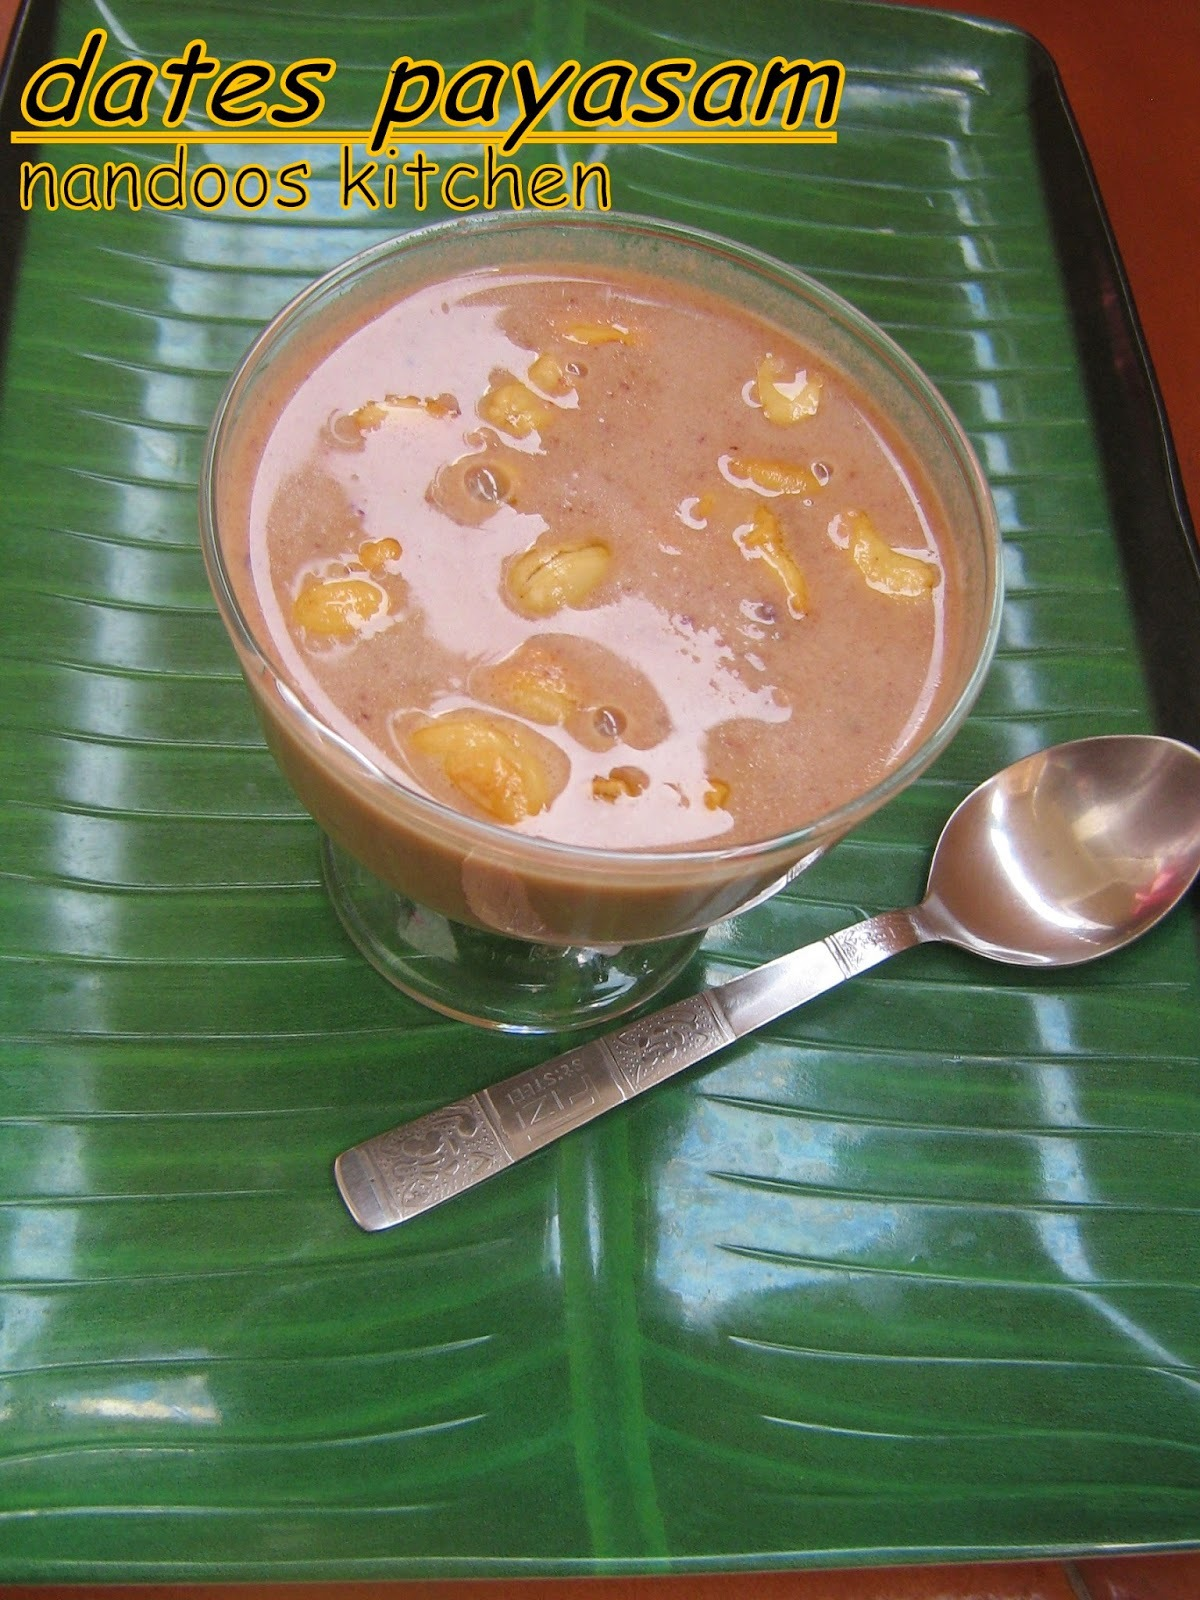 dates payasam / Kerala sadya recipe